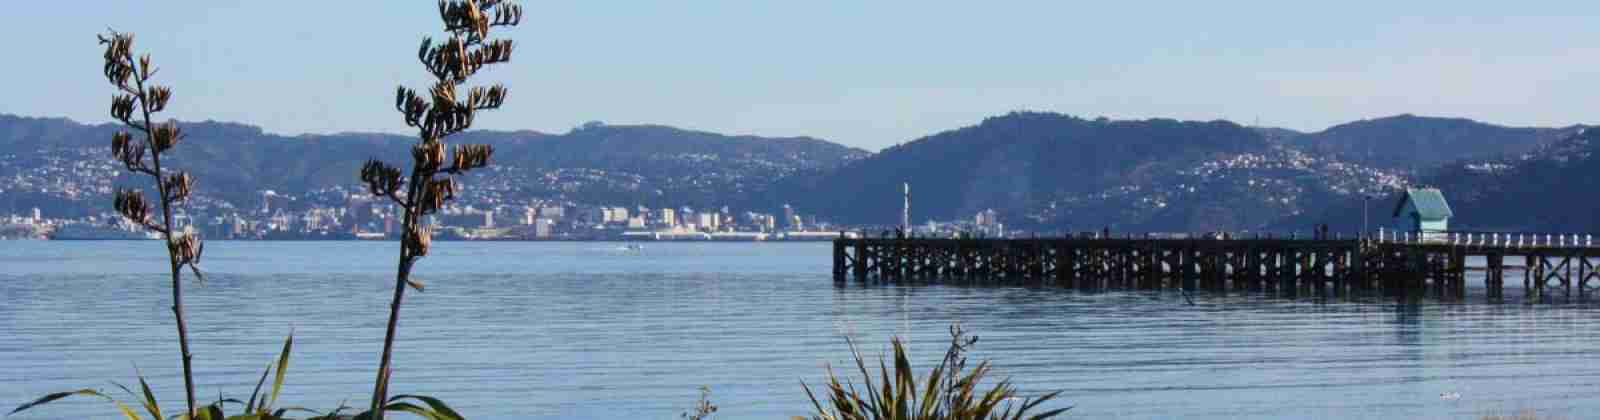 petone beach view of wharf with wellington city in background